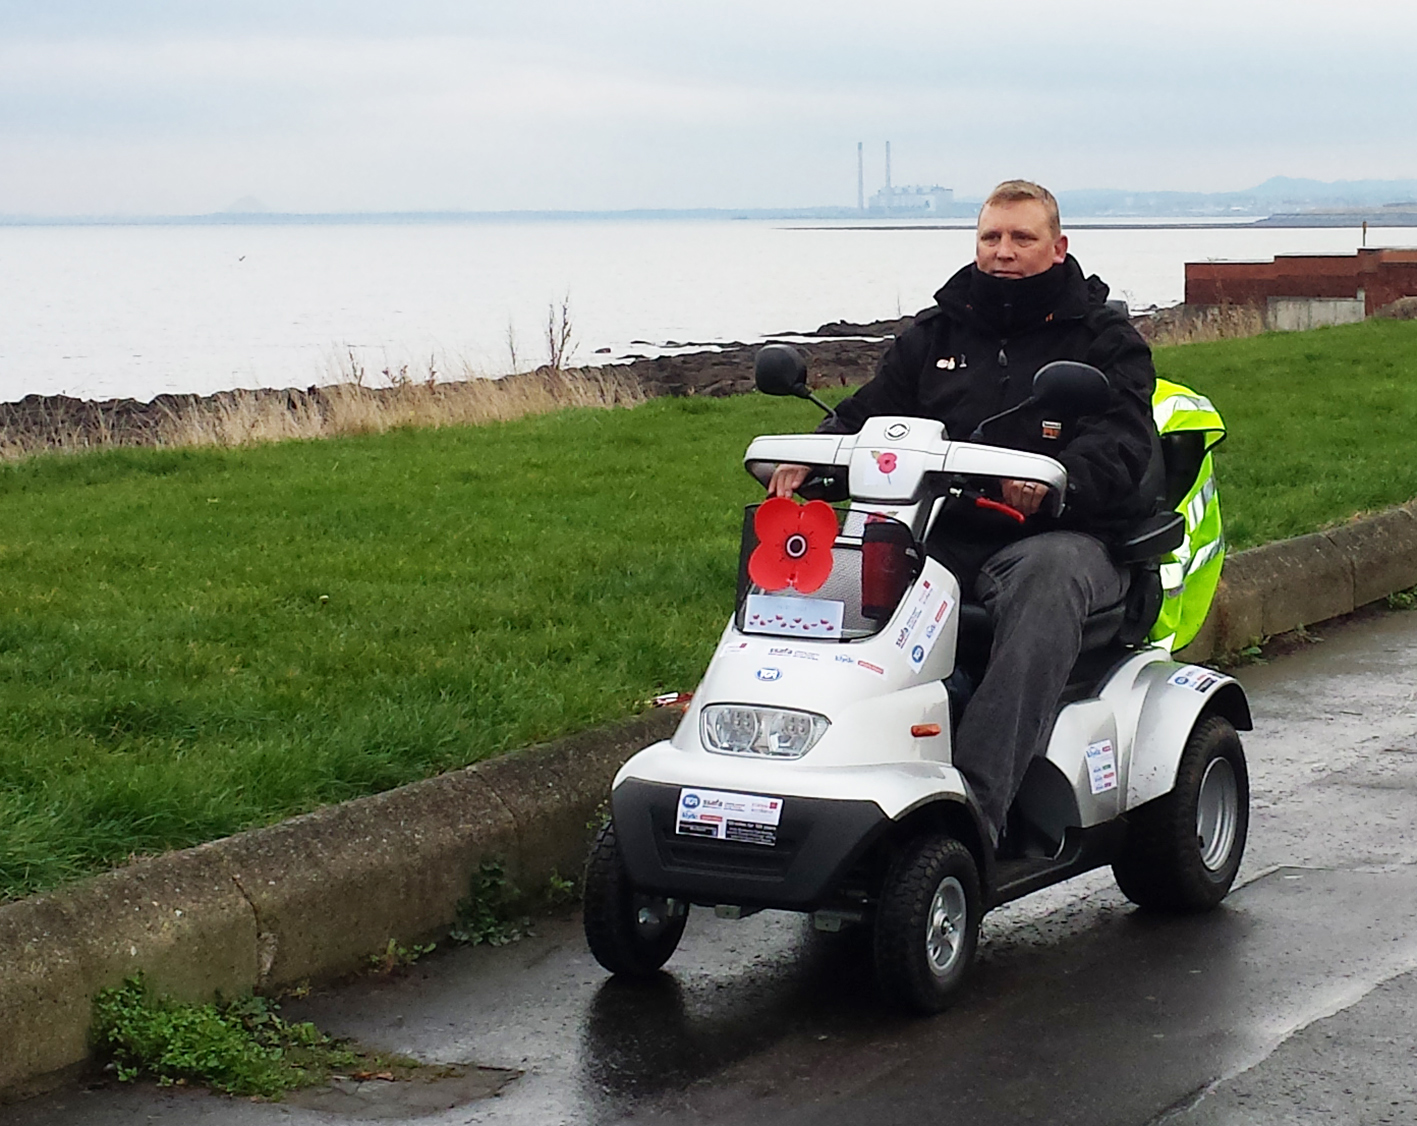 Inspirational war veteran completes 100 mile TGA Mobility scooter charity challenge on 100 year WW1 anniversary